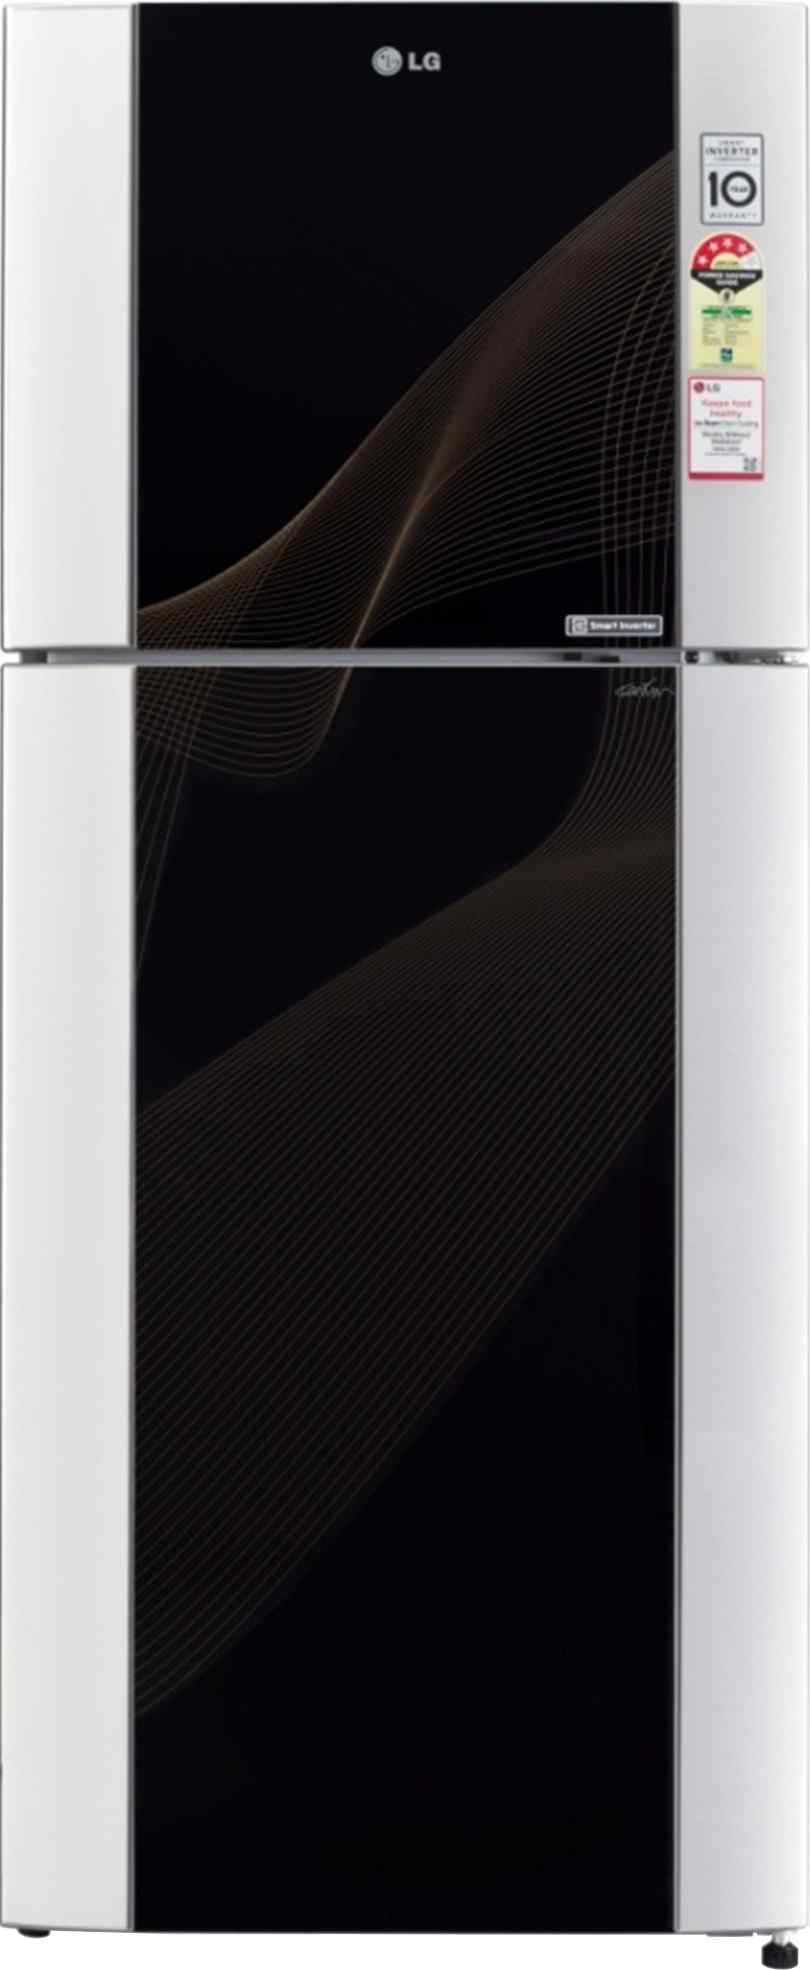 Best price on LG GL-I442TKRM Frost-free 4S 407 Litres Double Door Refrigerator in India